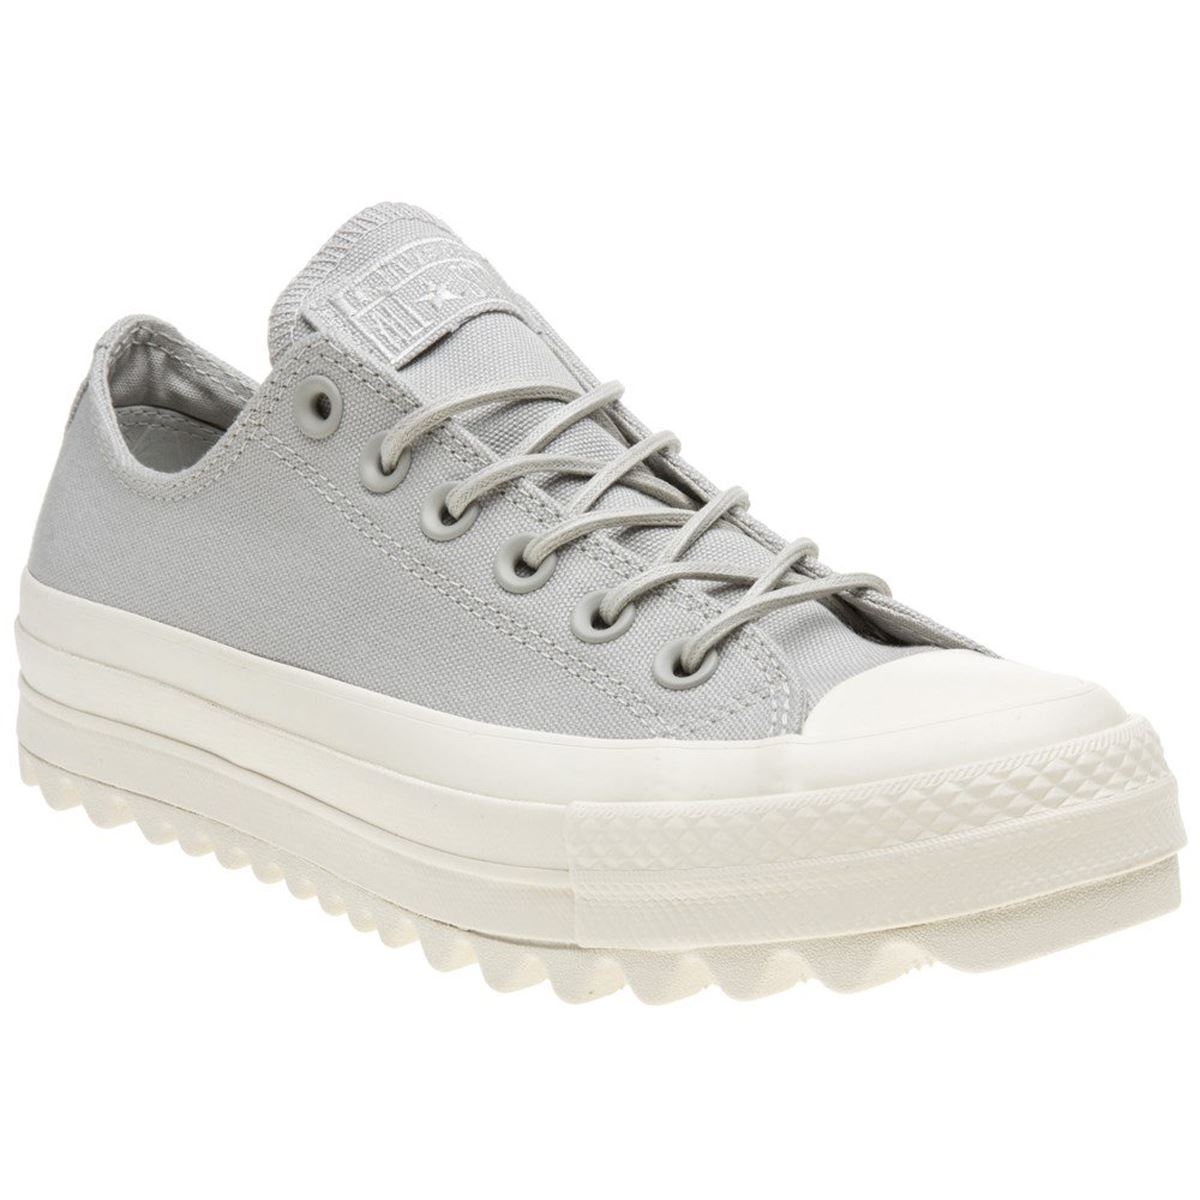 7f0043ee258a0f Converse Chuck Taylor All Star Lift Ripple Ox Pale Grey Womens Canvas  Trainers